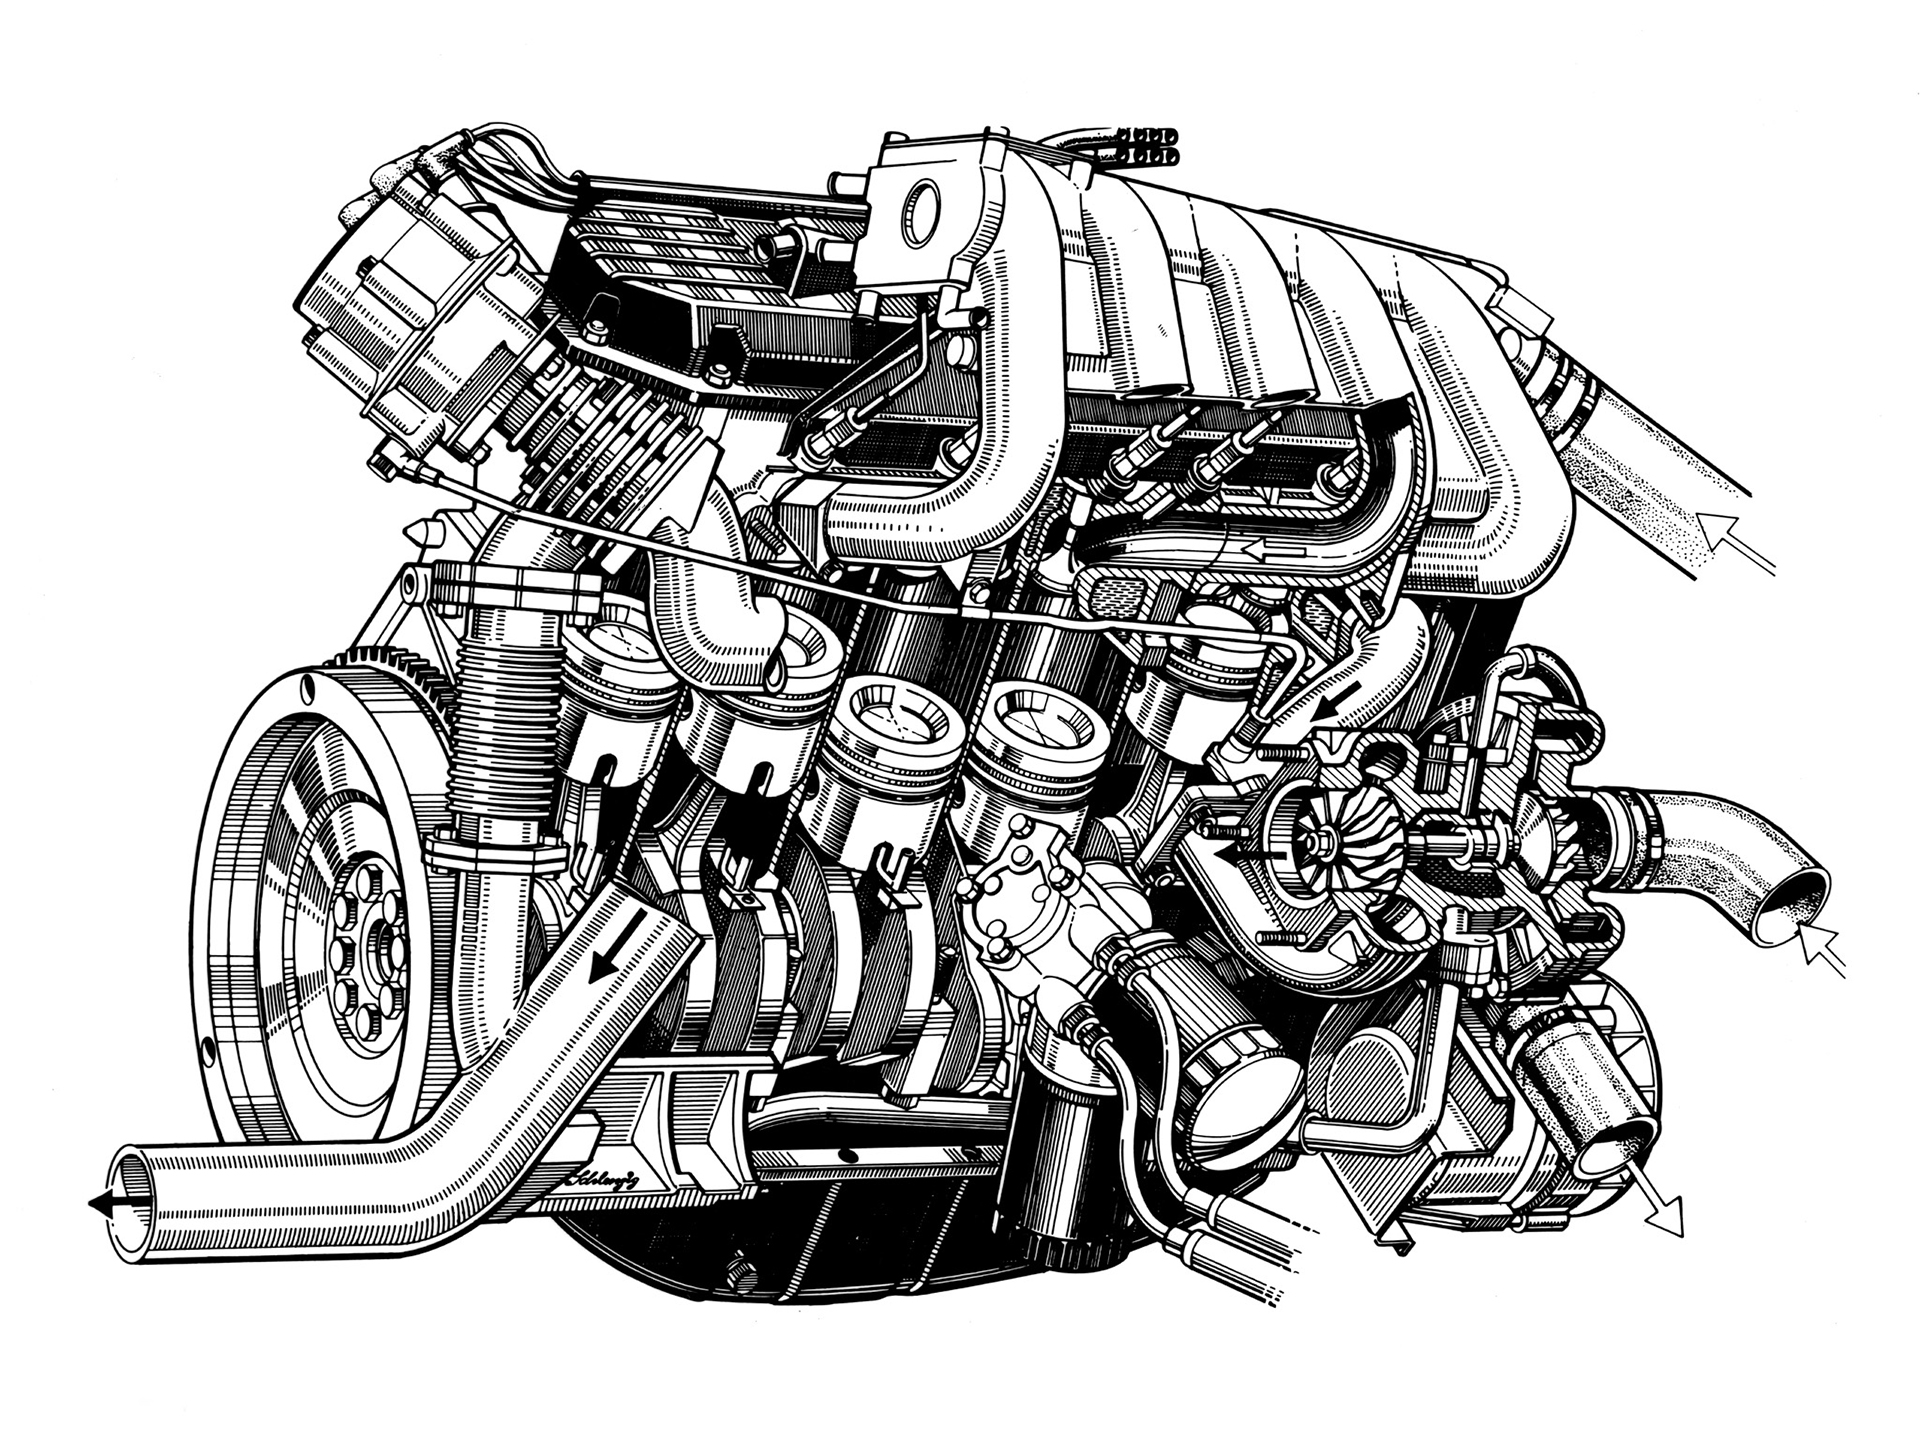 Audi quattro - under the hood - engine 5 cylinder - artwork